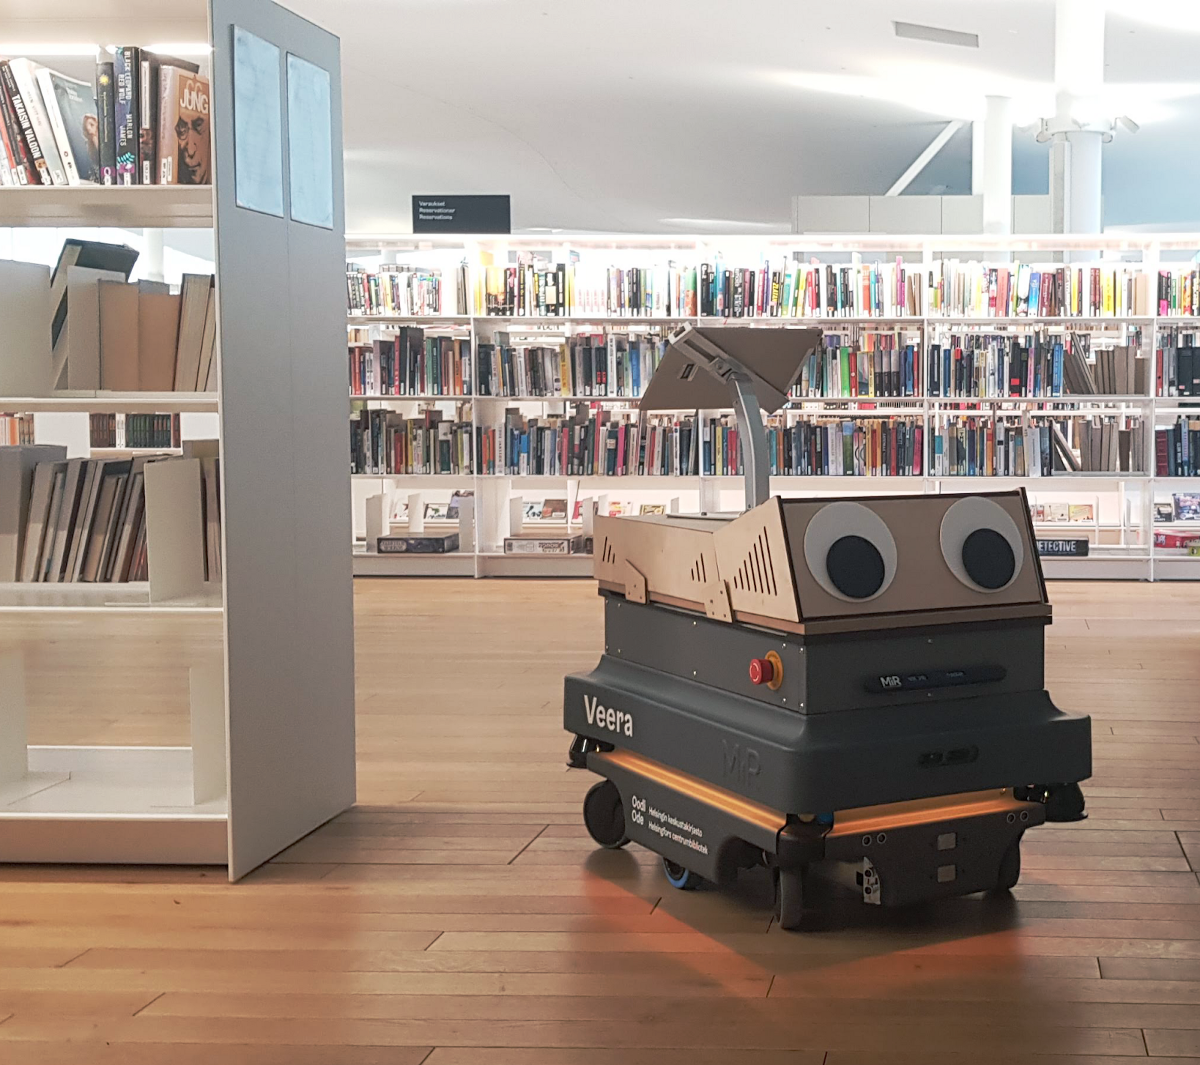 The Little Robot that Lived at the Library - Towards Data